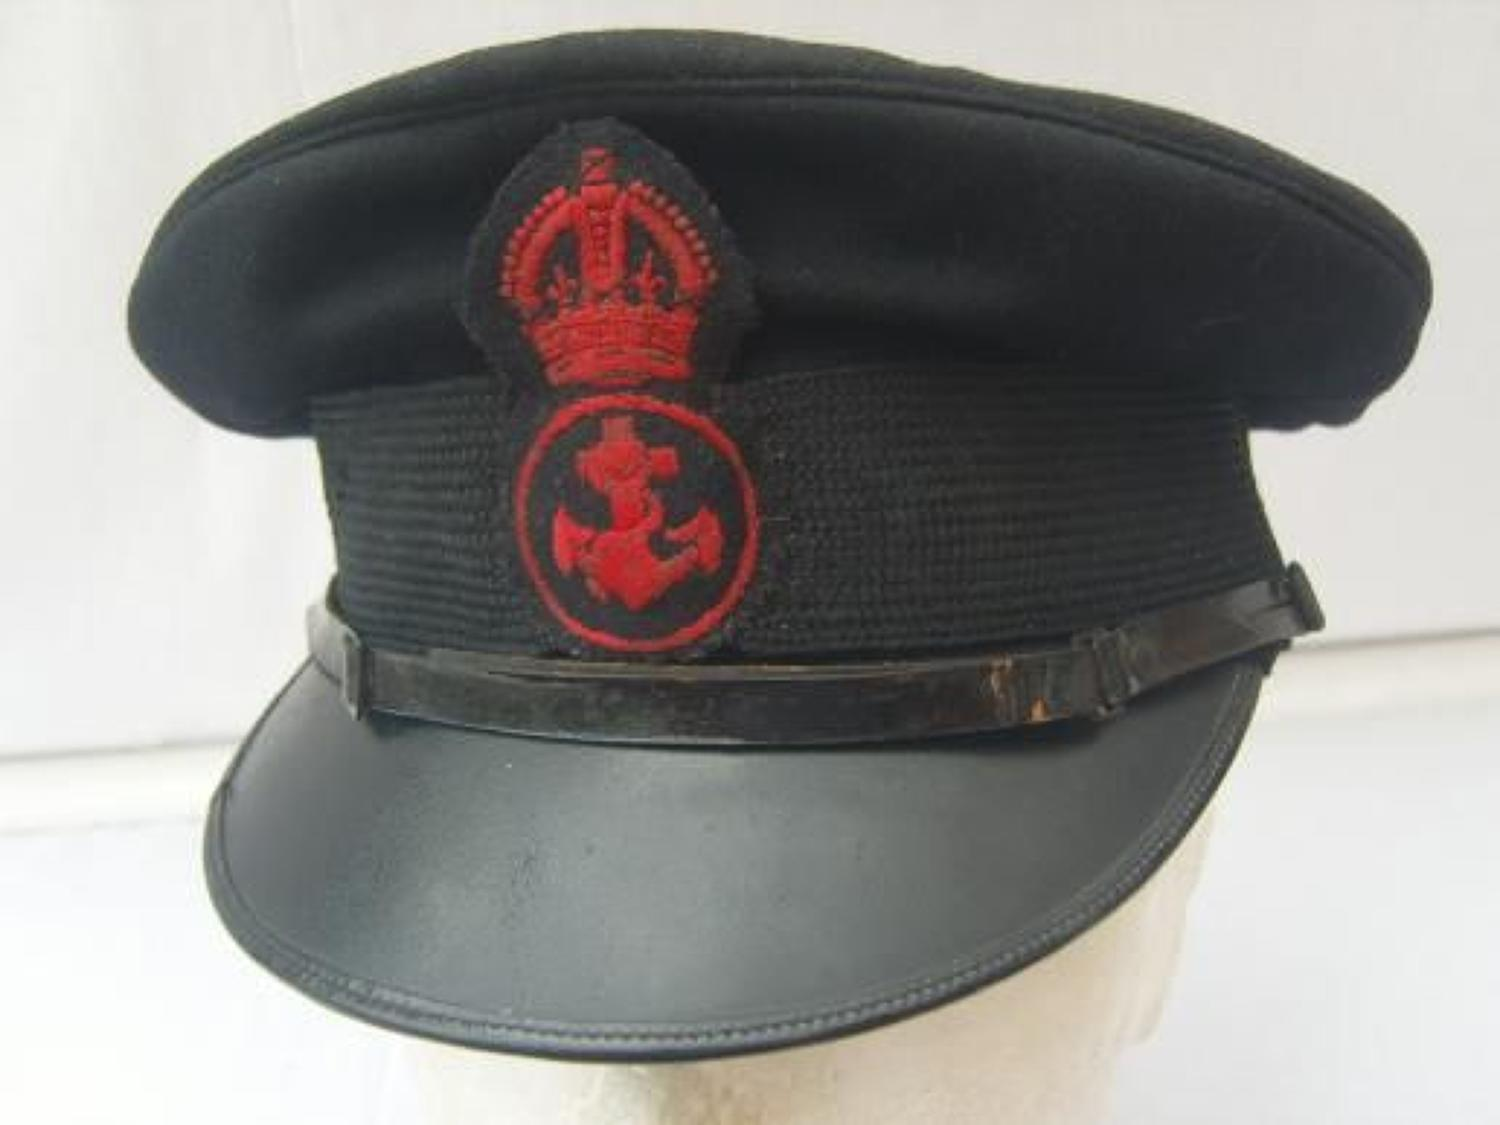 ROYAL NAVY PETTY OFFICERS PEAK CAP